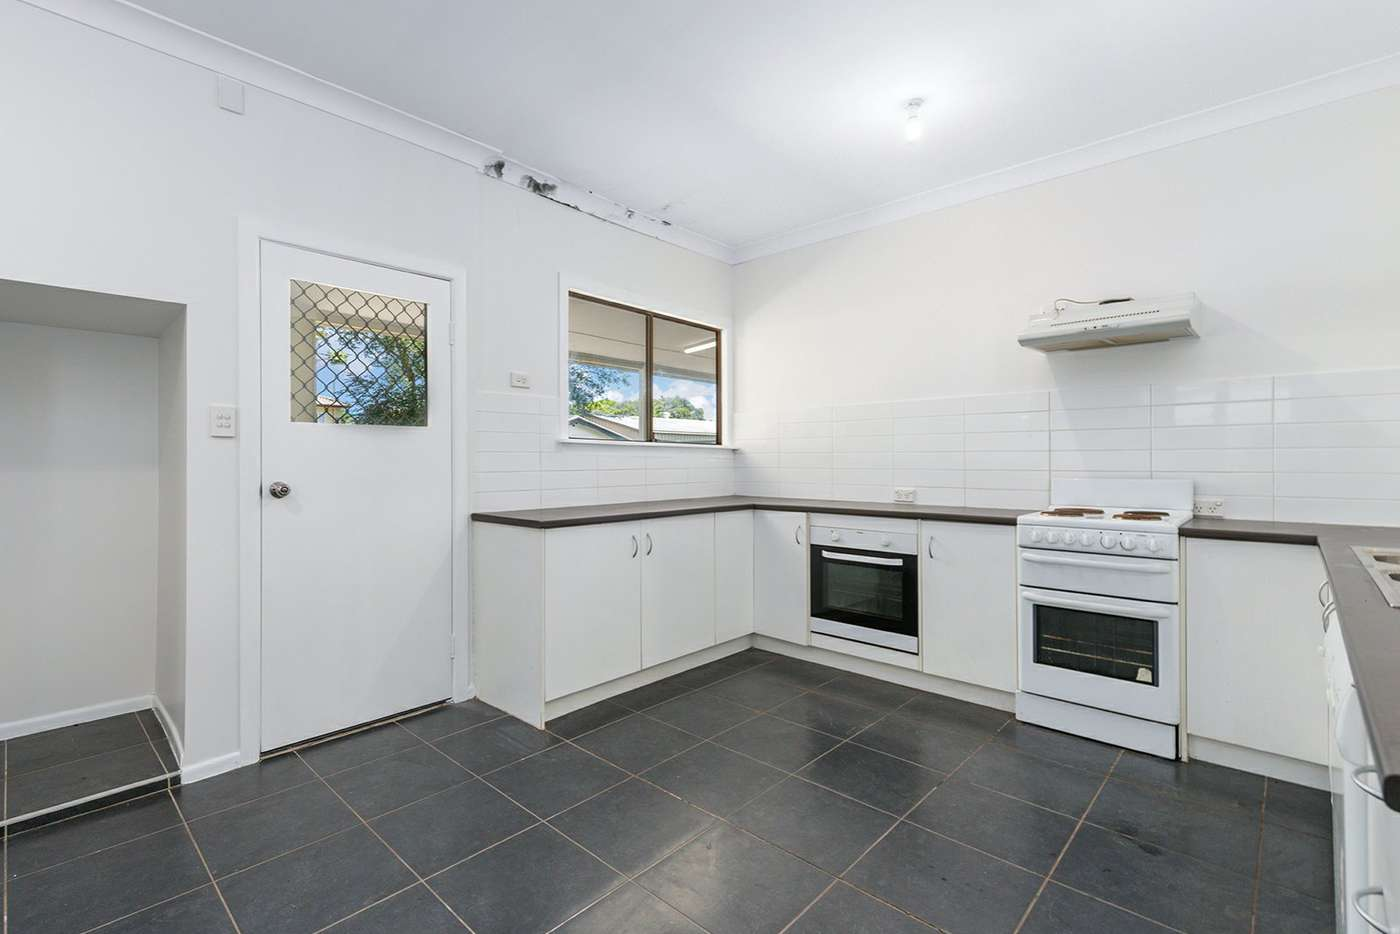 Fifth view of Homely house listing, 144 Granard Road, Archerfield QLD 4108